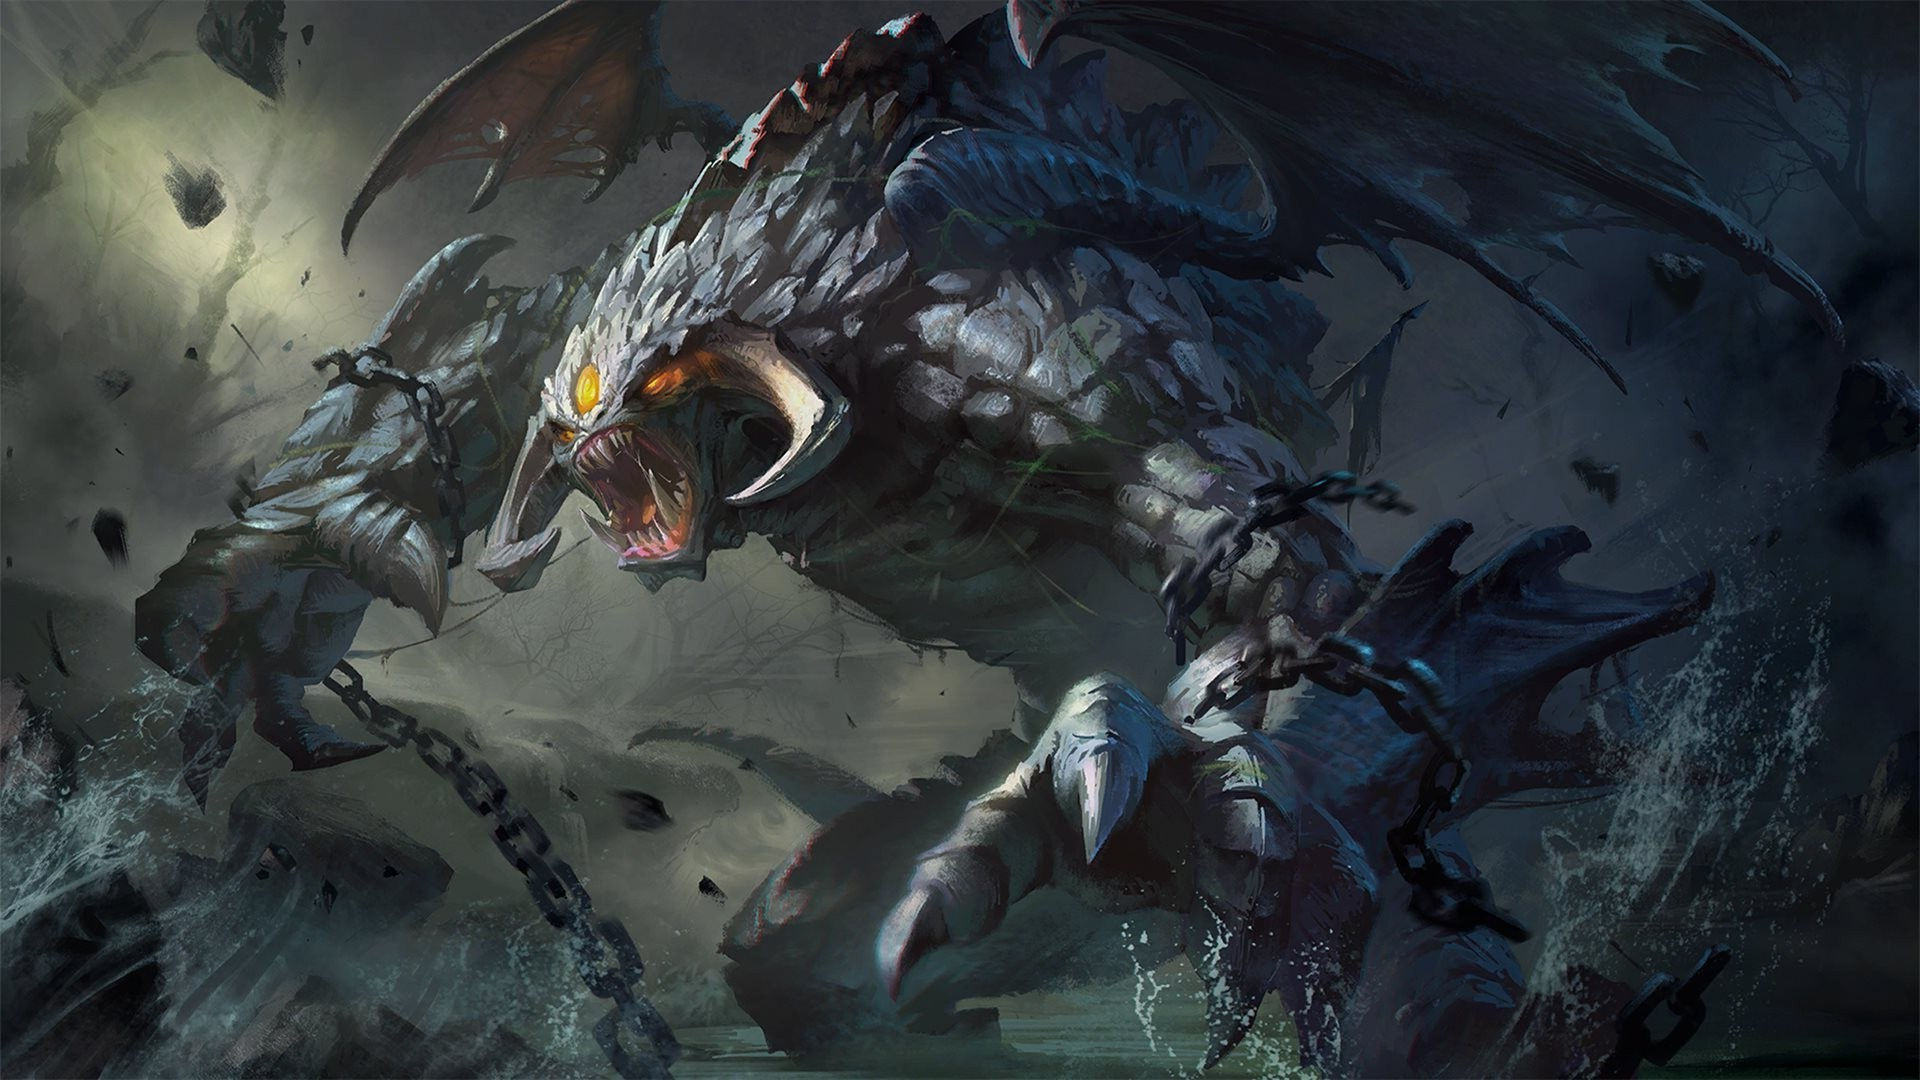 Defense Of The Ancient, Dota, Dota 2, Valve, Valve Corporation, Heroes,  Video Games, Roshan, Big Boss Wallpapers HD / Desktop and Mobile Backgrounds